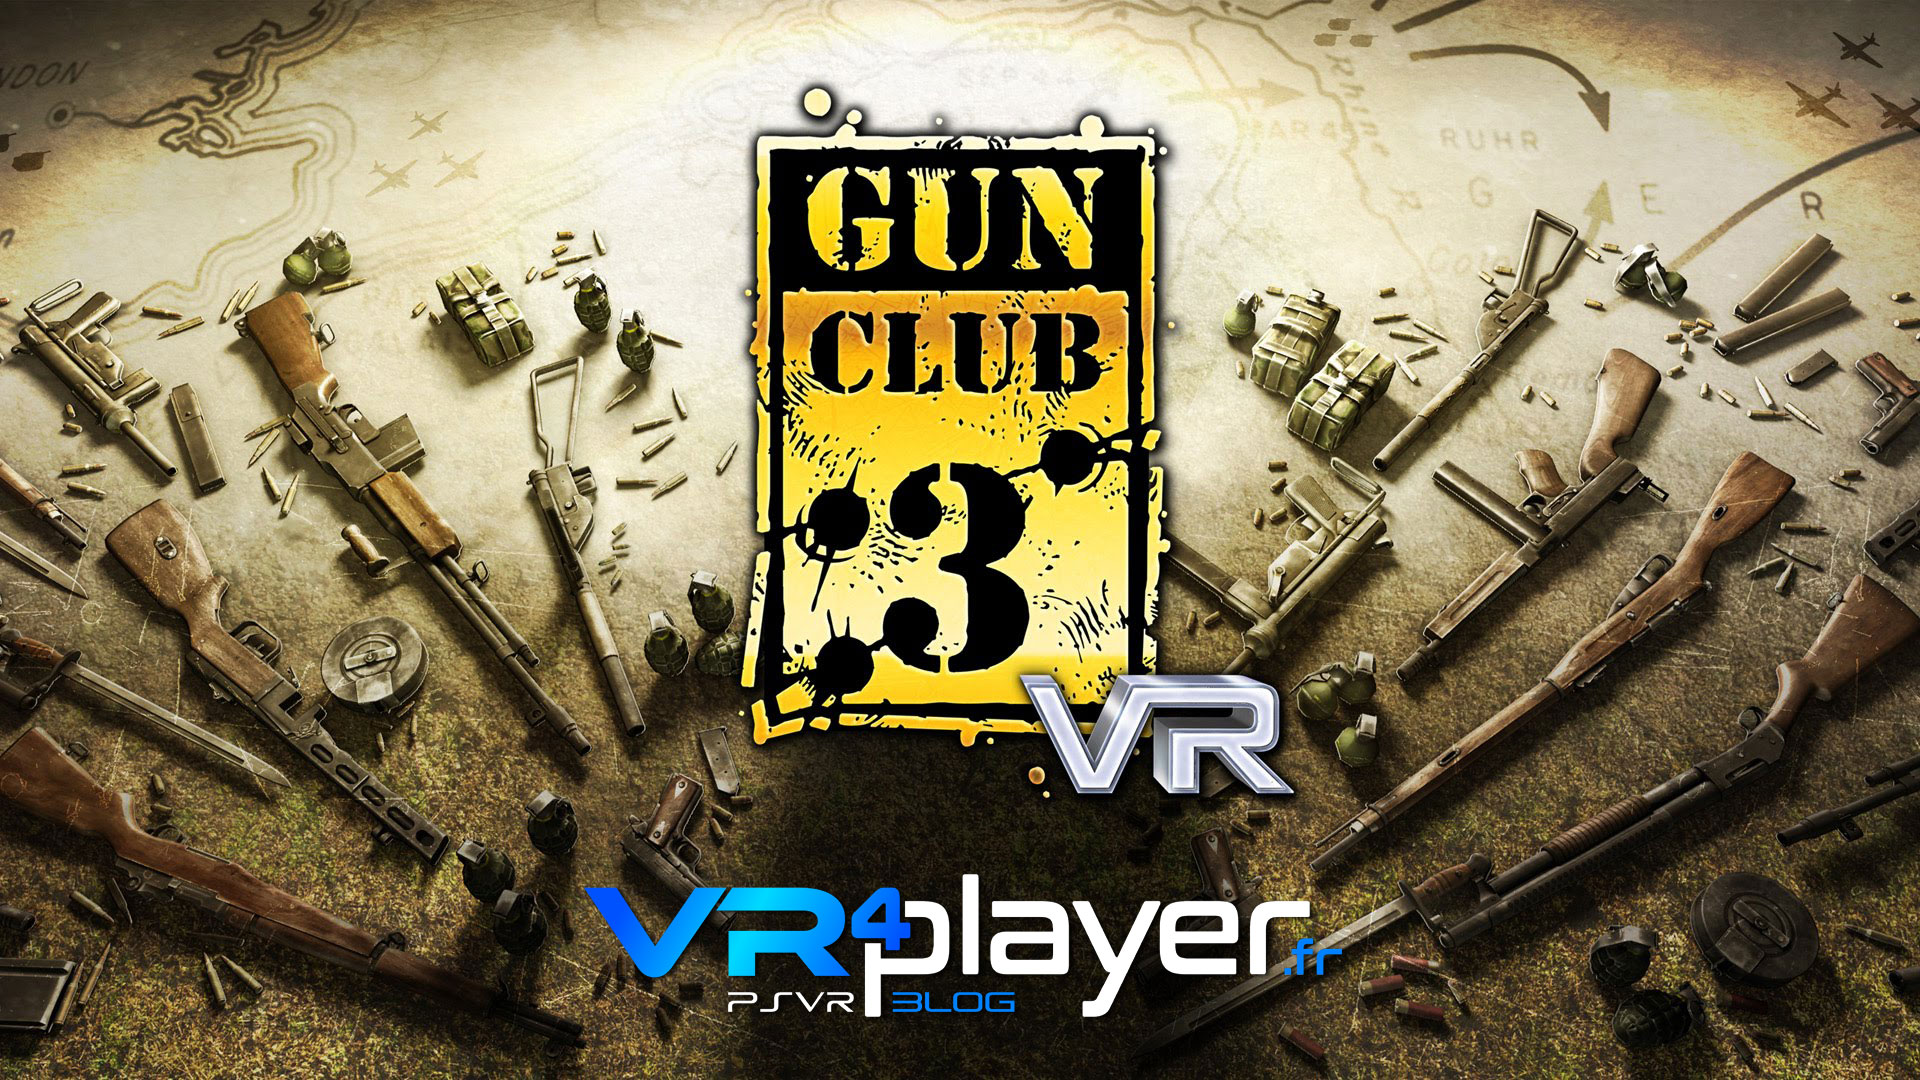 Gun Club VR s'invite sur PSR - vr4player.fr